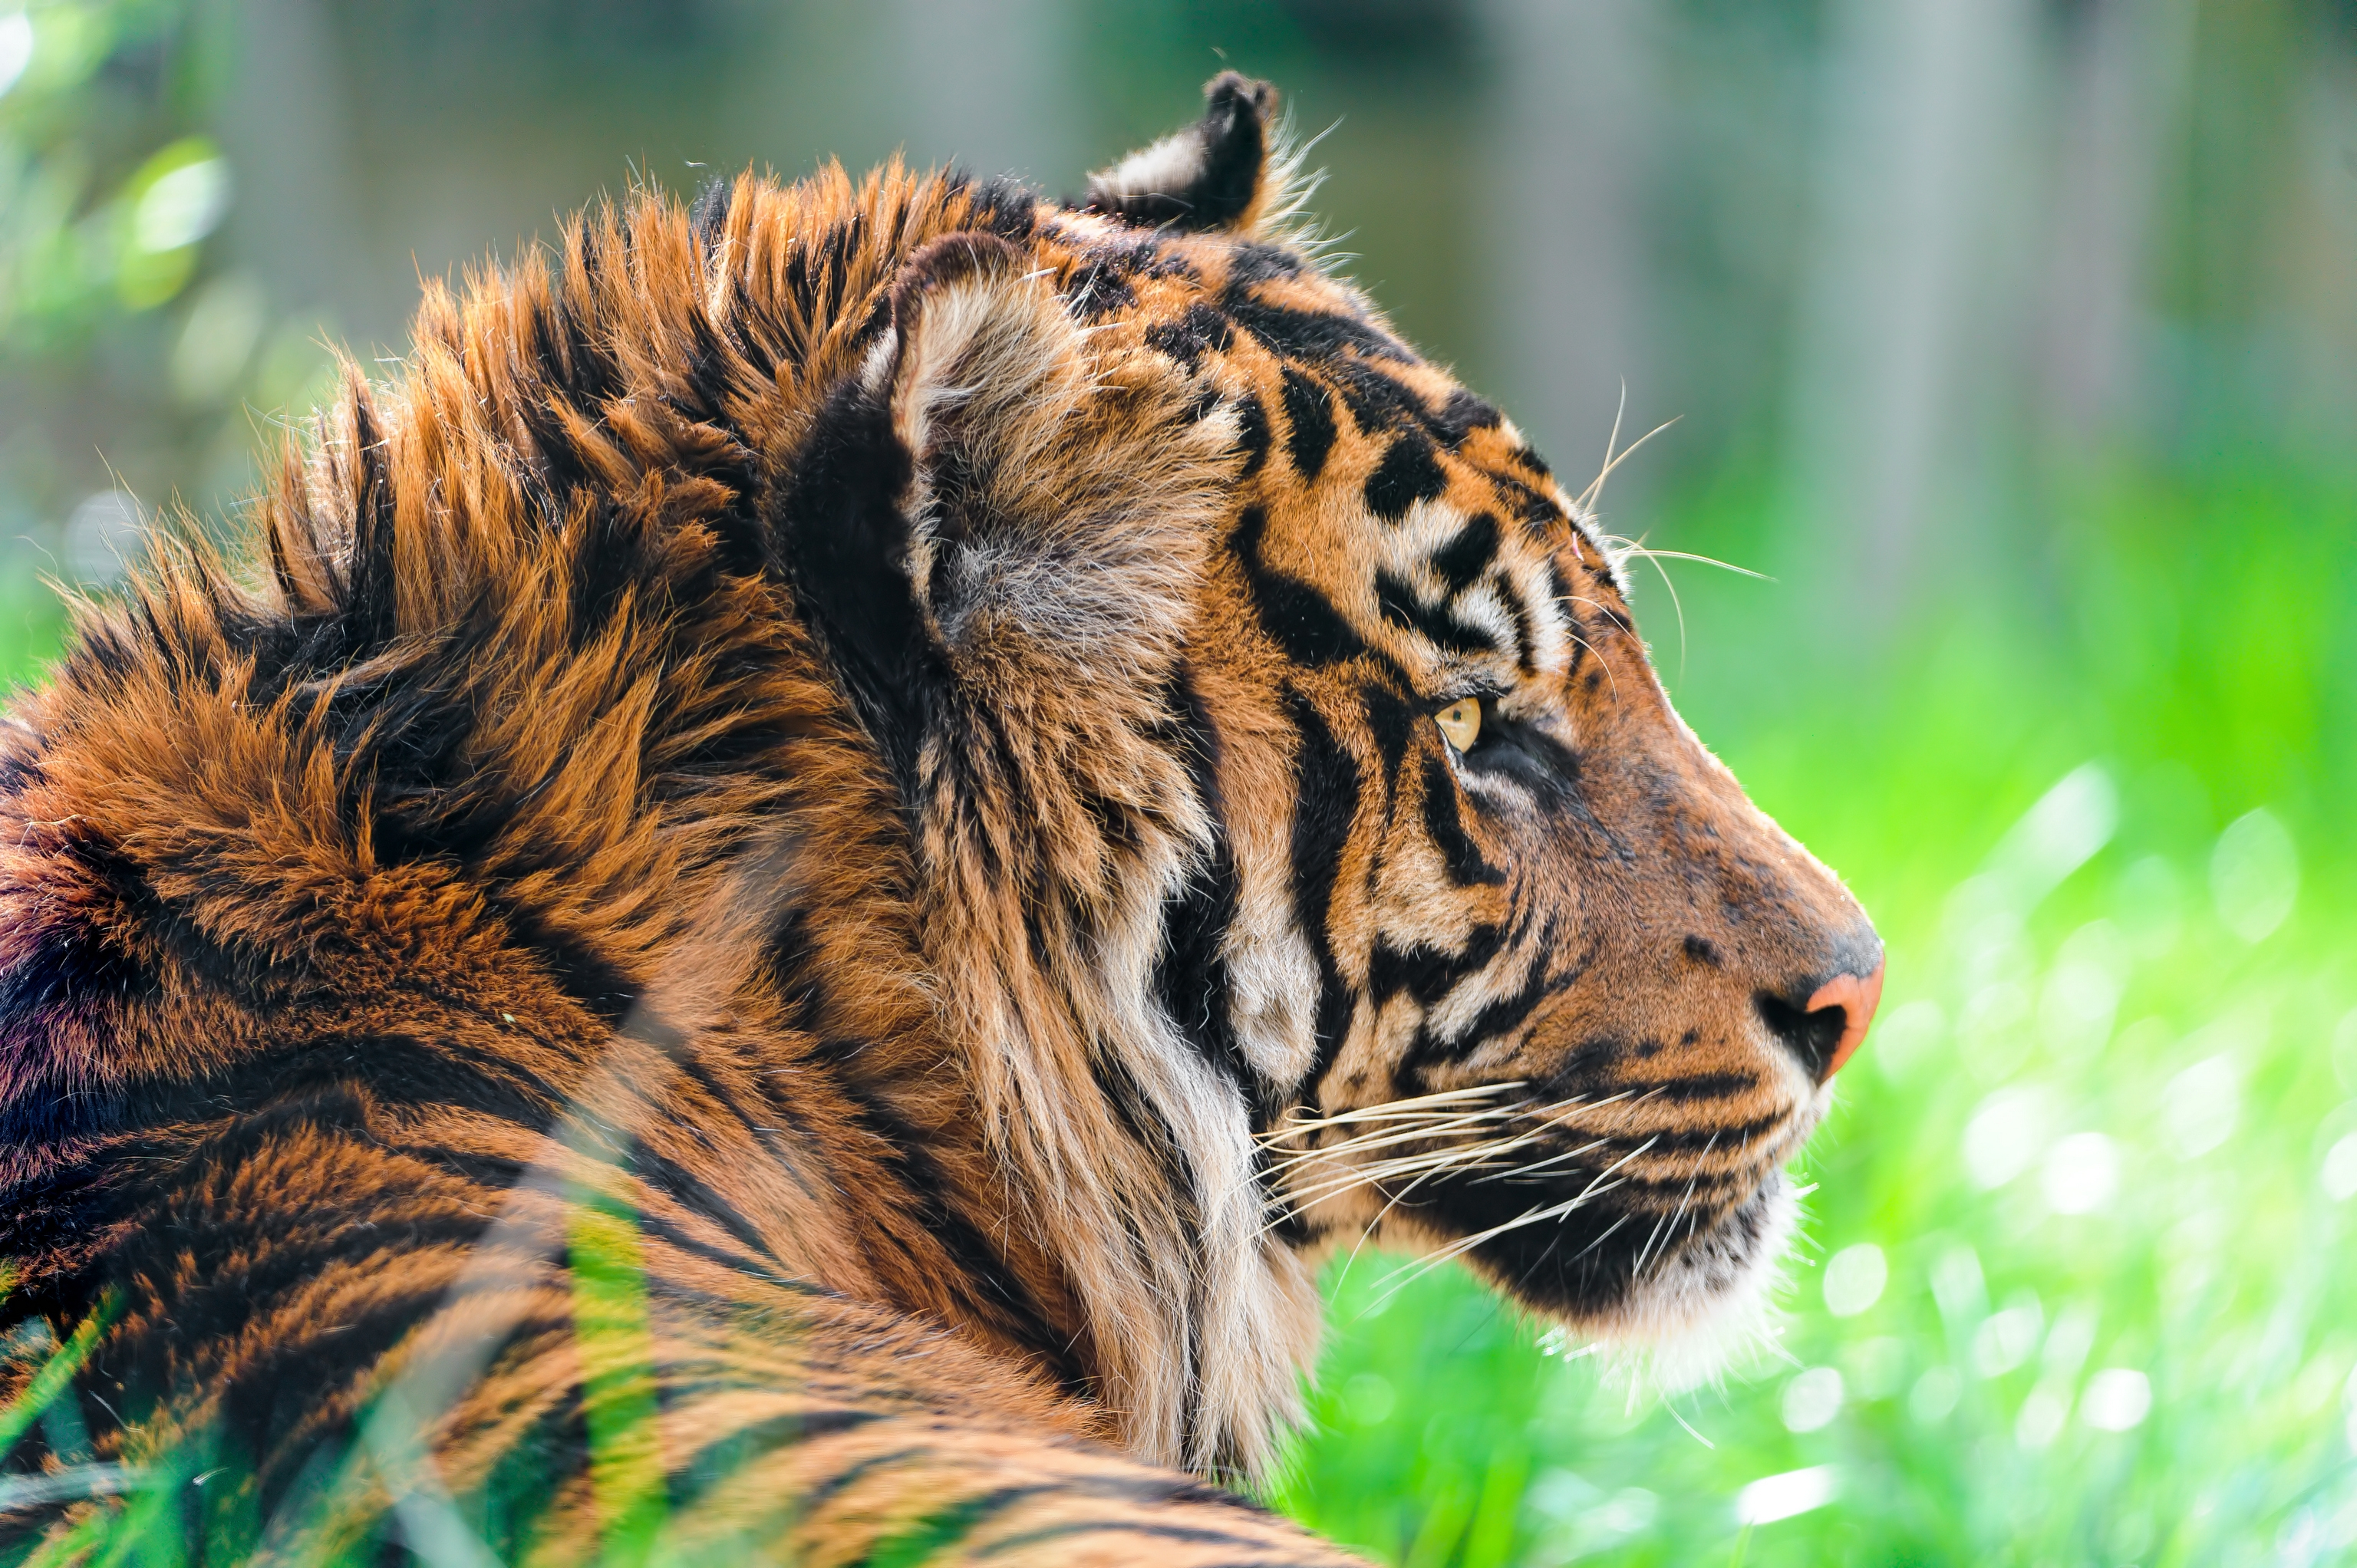 60656 download wallpaper Animals, Tiger, Predator, Grass, Wool, Profile screensavers and pictures for free